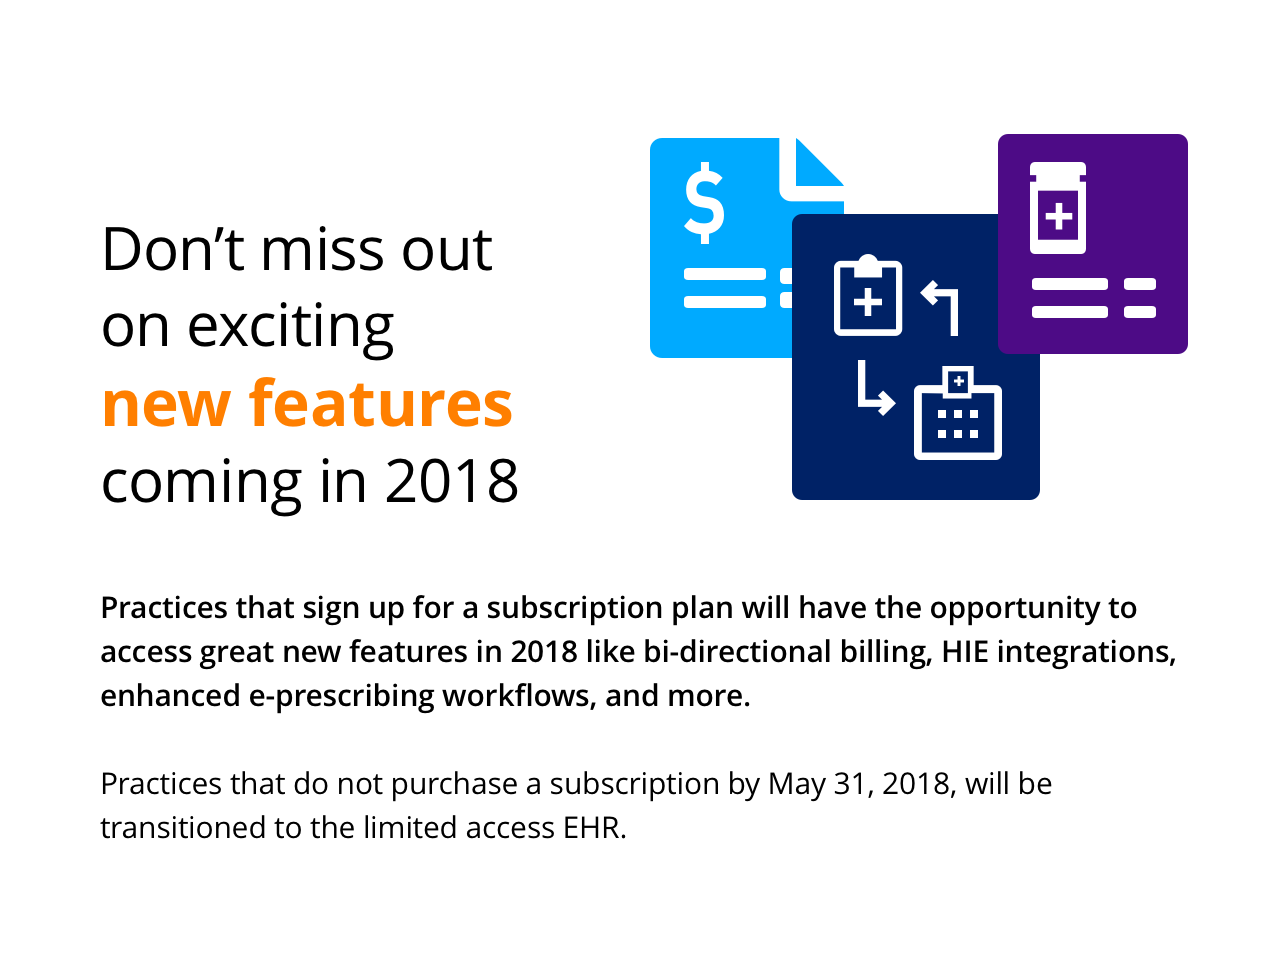 Practices that sign up for a subscription plan will have the opportunity to access great new features in 2018 like bi-directional billing, HIE integrations, enhanced e-prescribing workflows, and more.